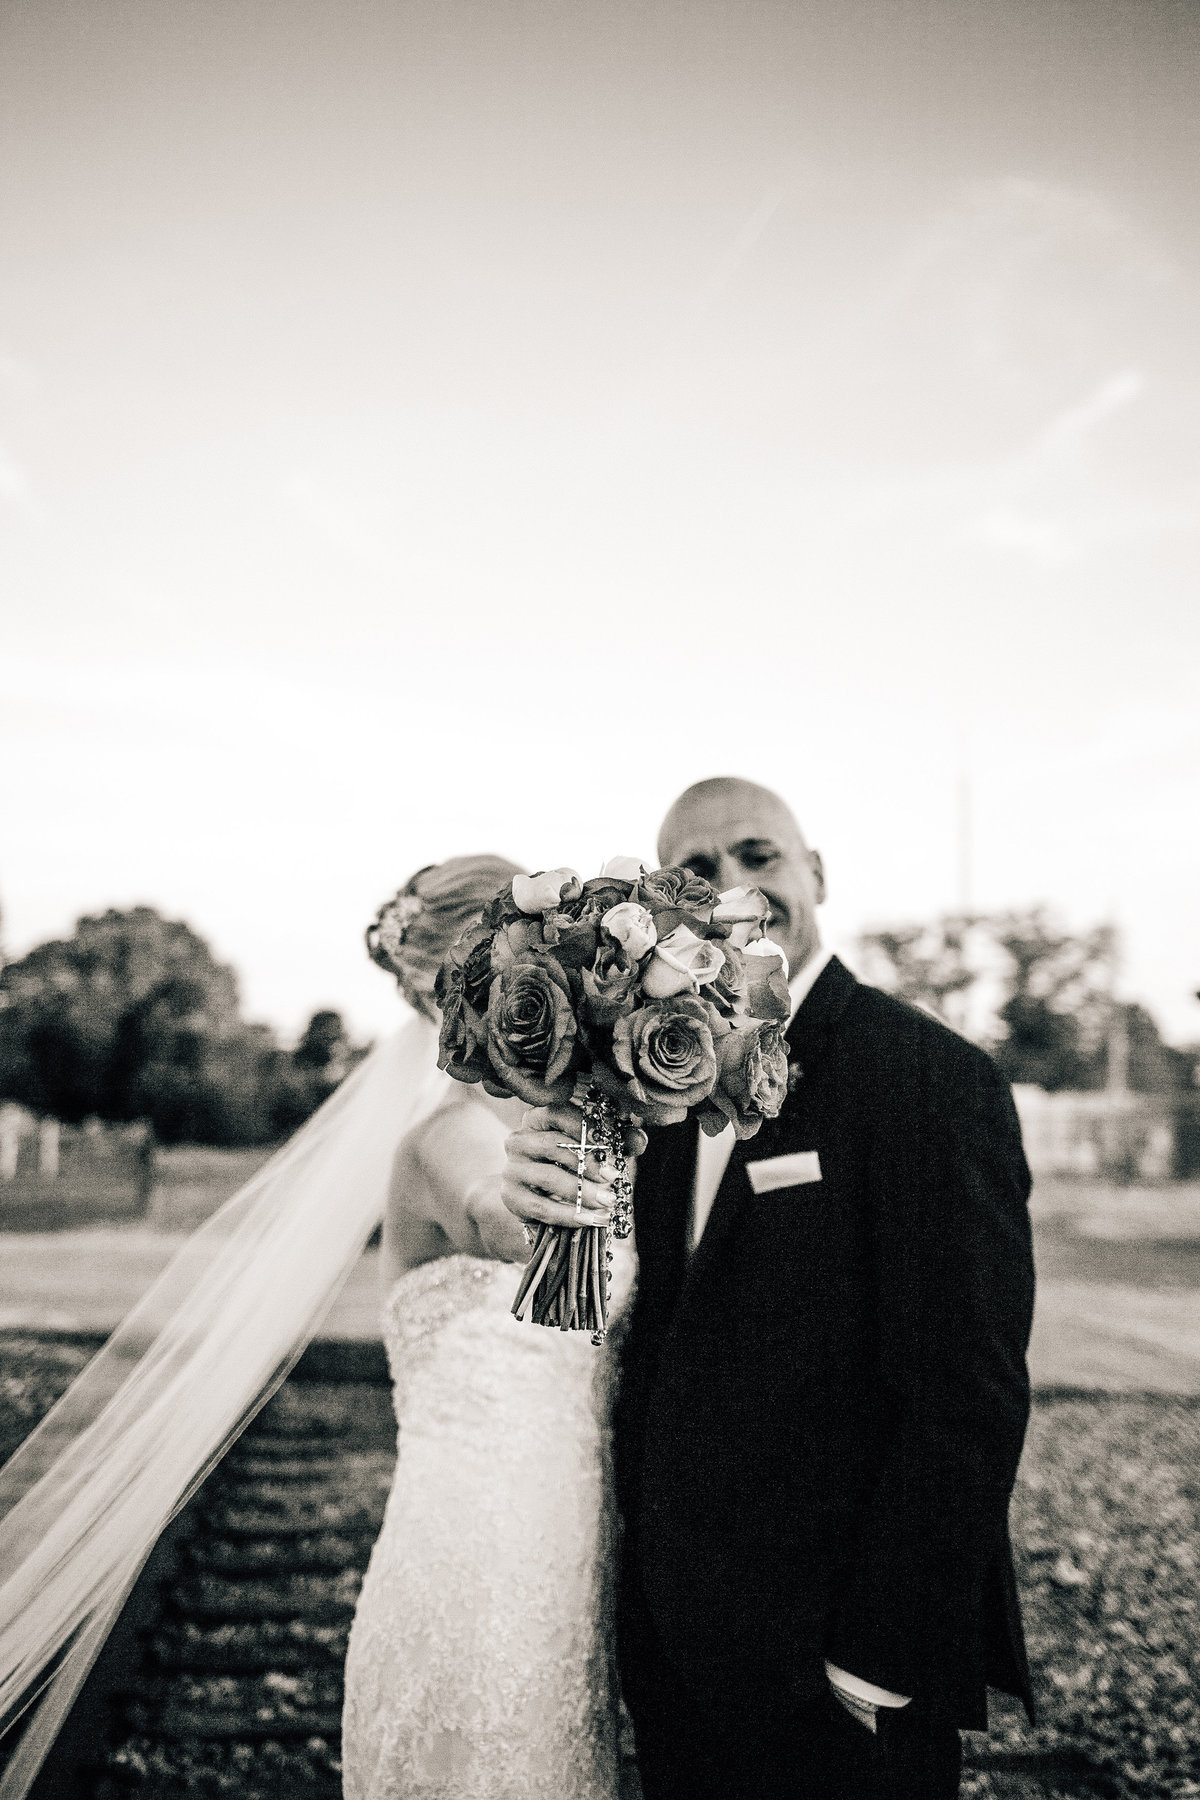 Kimberly_Hoyle_Photography_Milam_The_Back_Center_Melbourne_Wedding-69